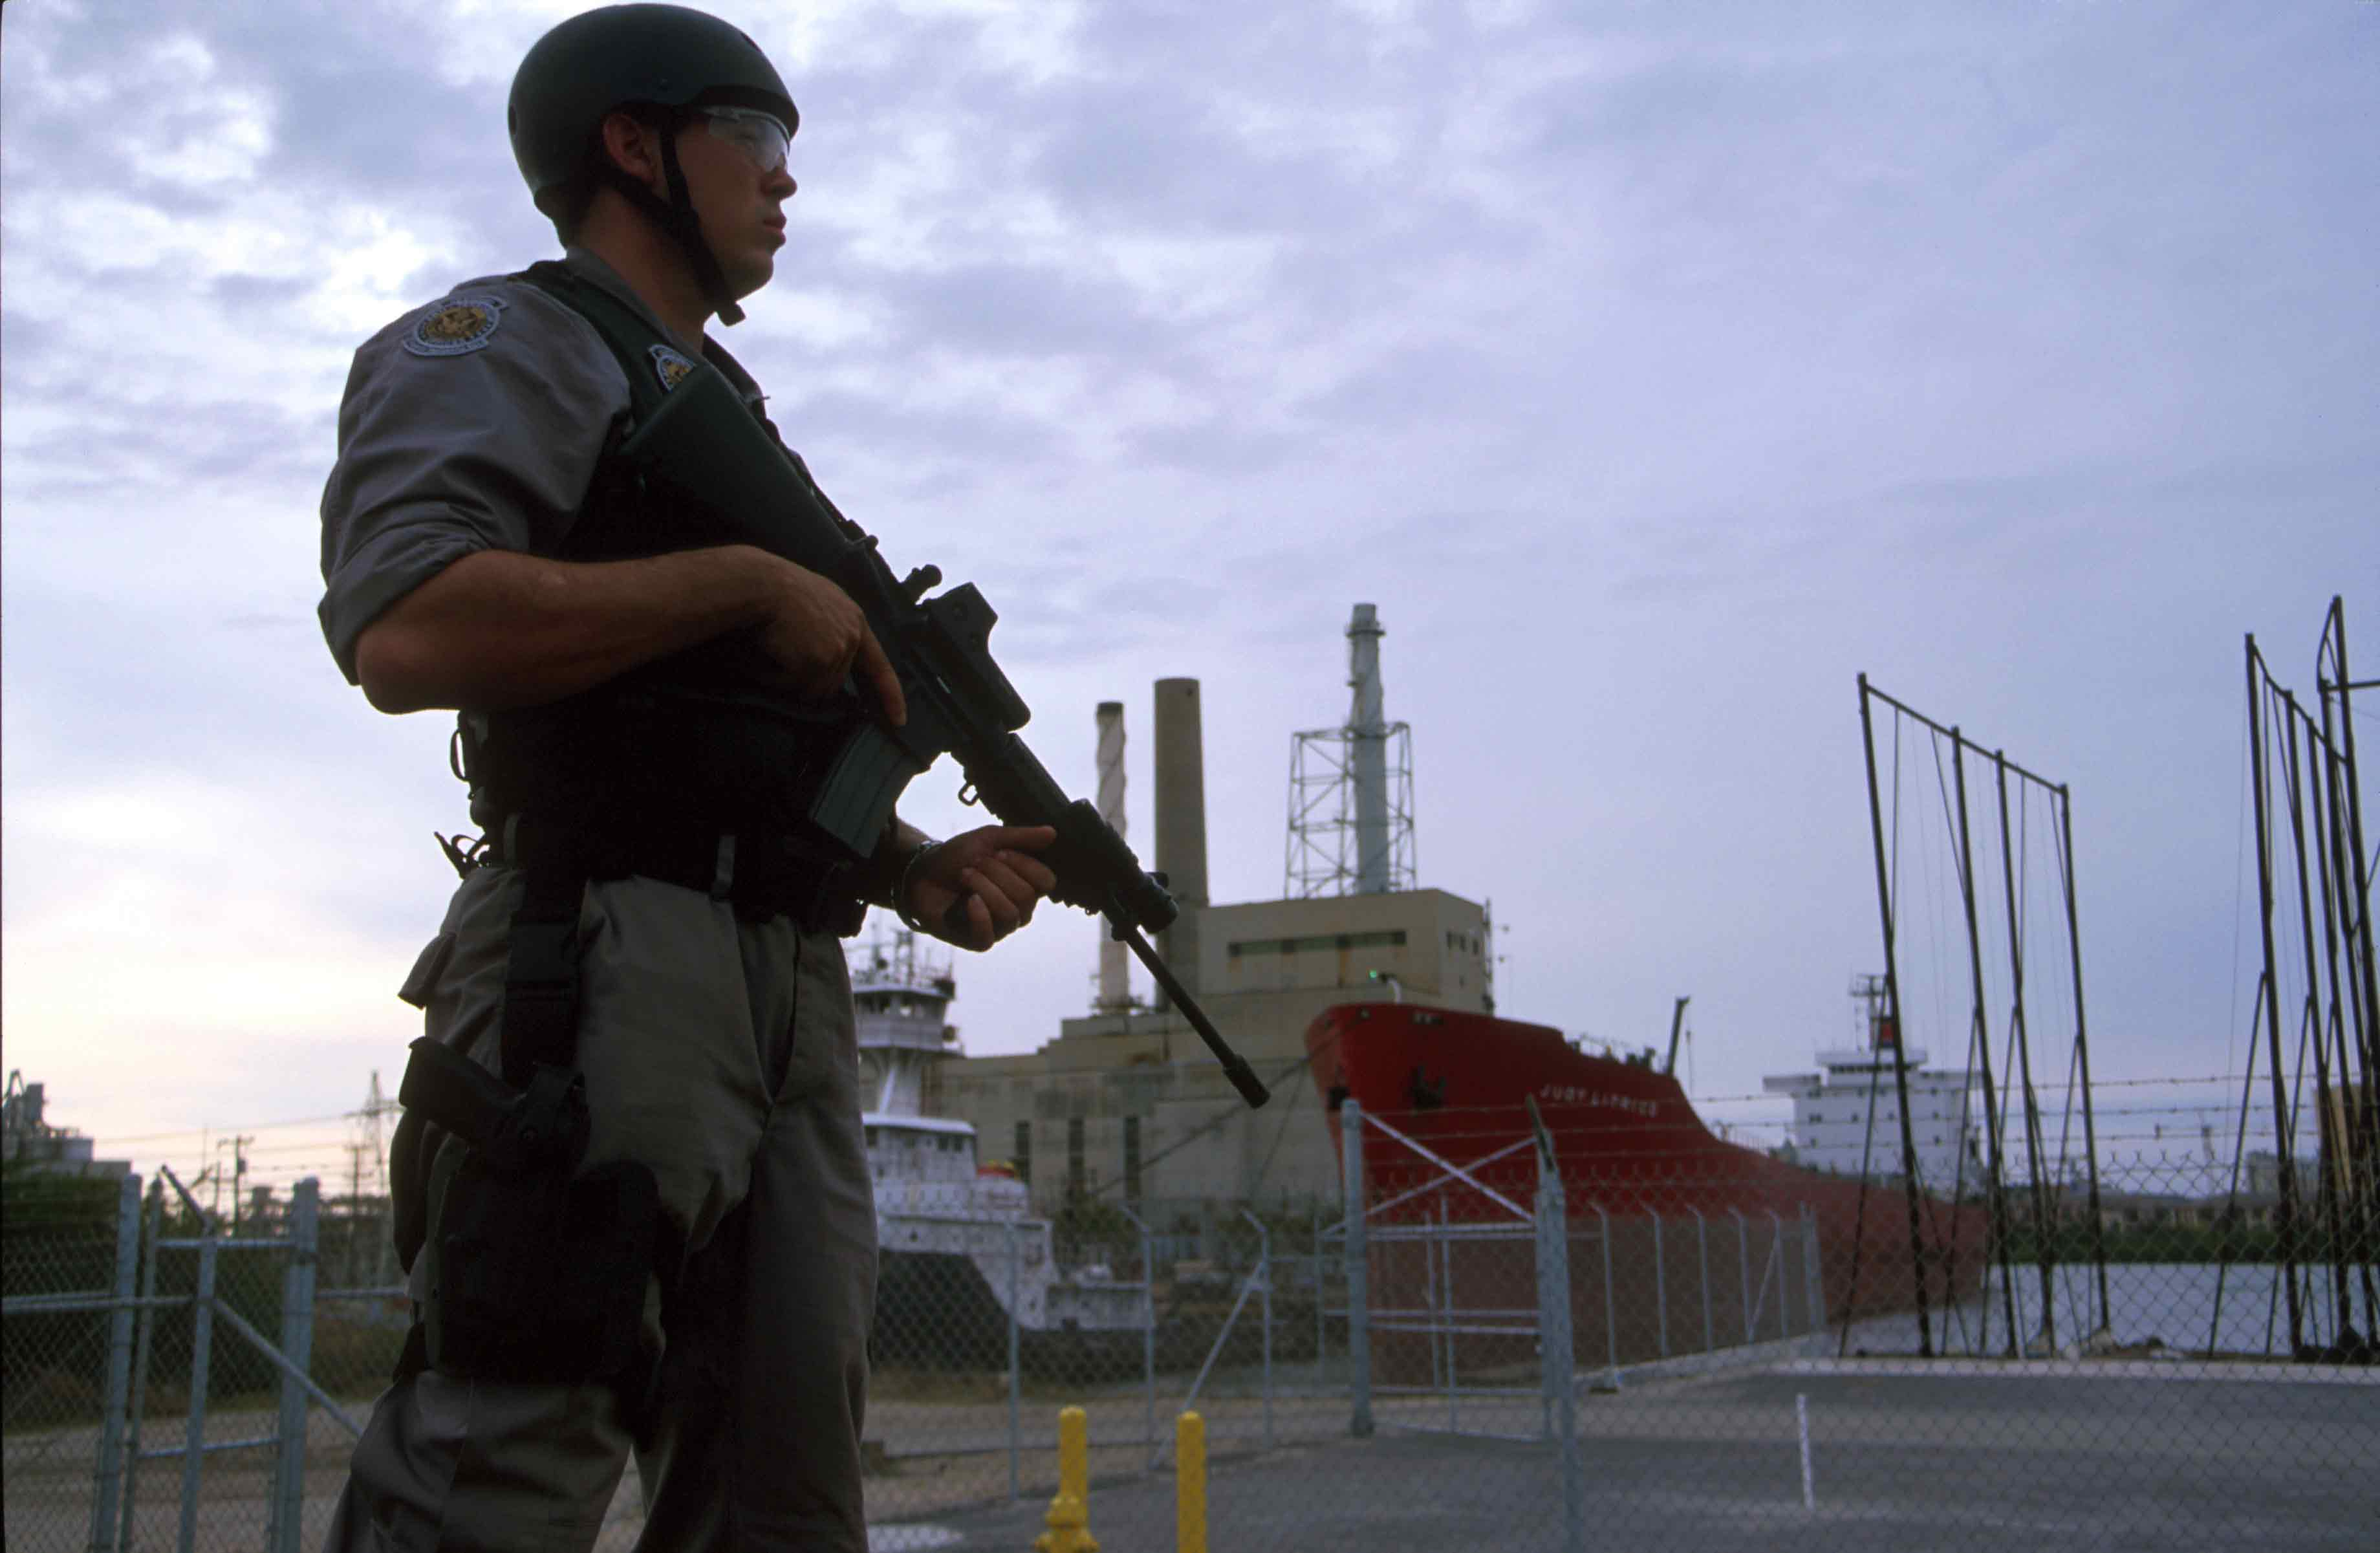 Critical Infrastructure Security Anti-terrorism Officer protecting port